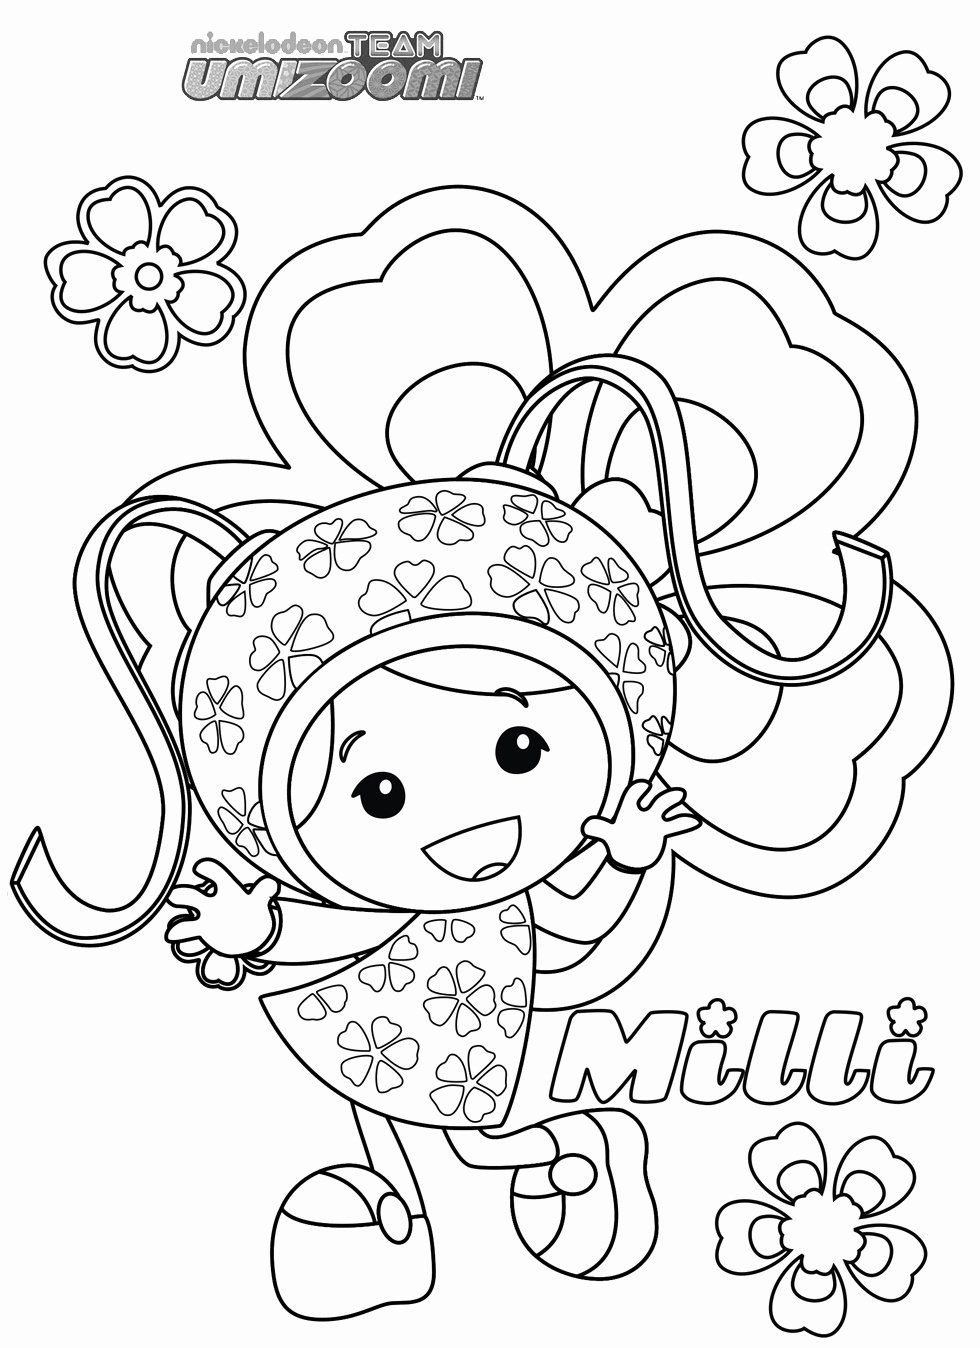 Team Umizoomi Coloring Page Fresh Team Umizoomi Coloring Pages Best Coloring Pages For Kids In 2020 Team Umizoomi Cartoon Coloring Pages Coloring Books